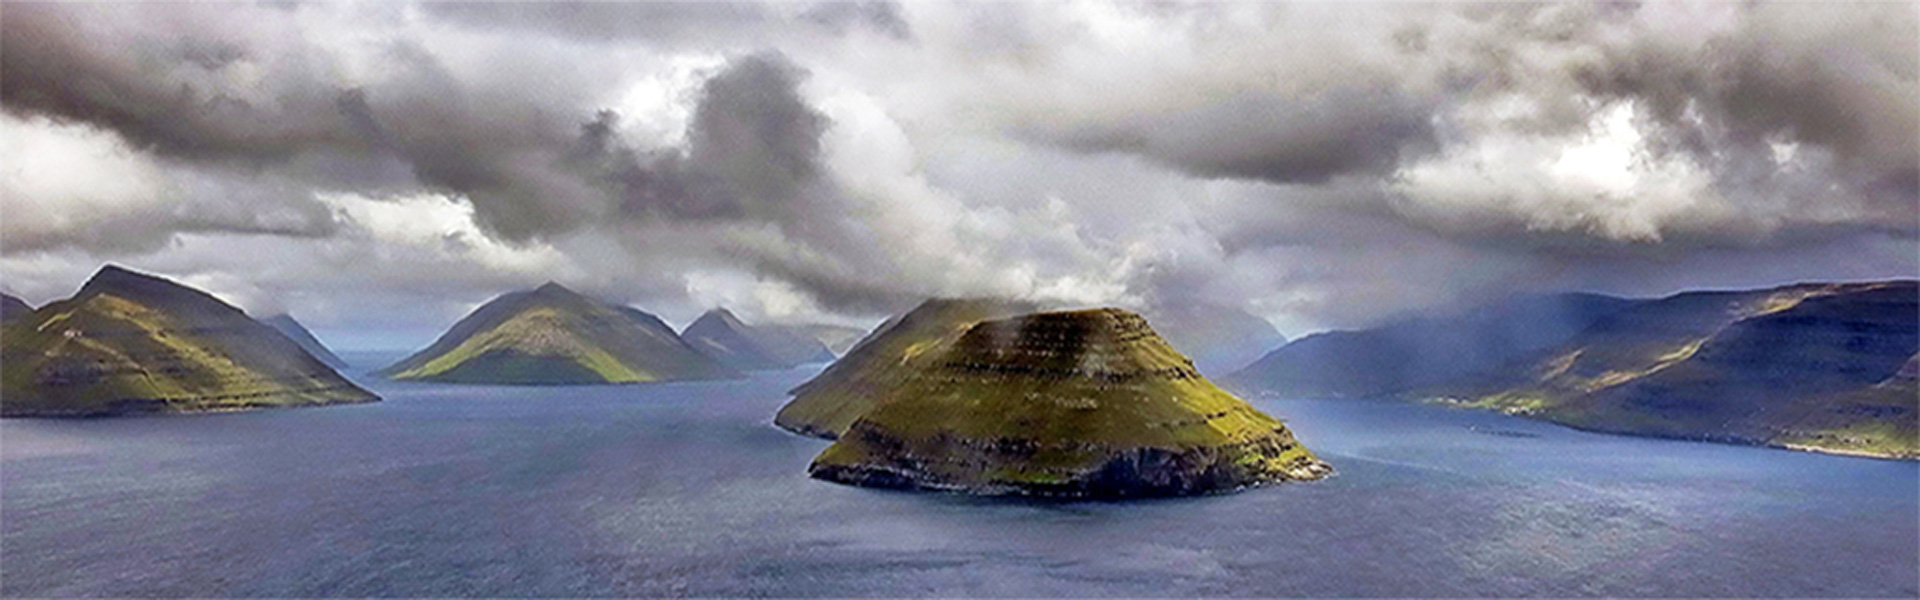 Impression of the stunning Faroe Islands taken from a helicopter, August 2014. Photo: Ingi Sørensen